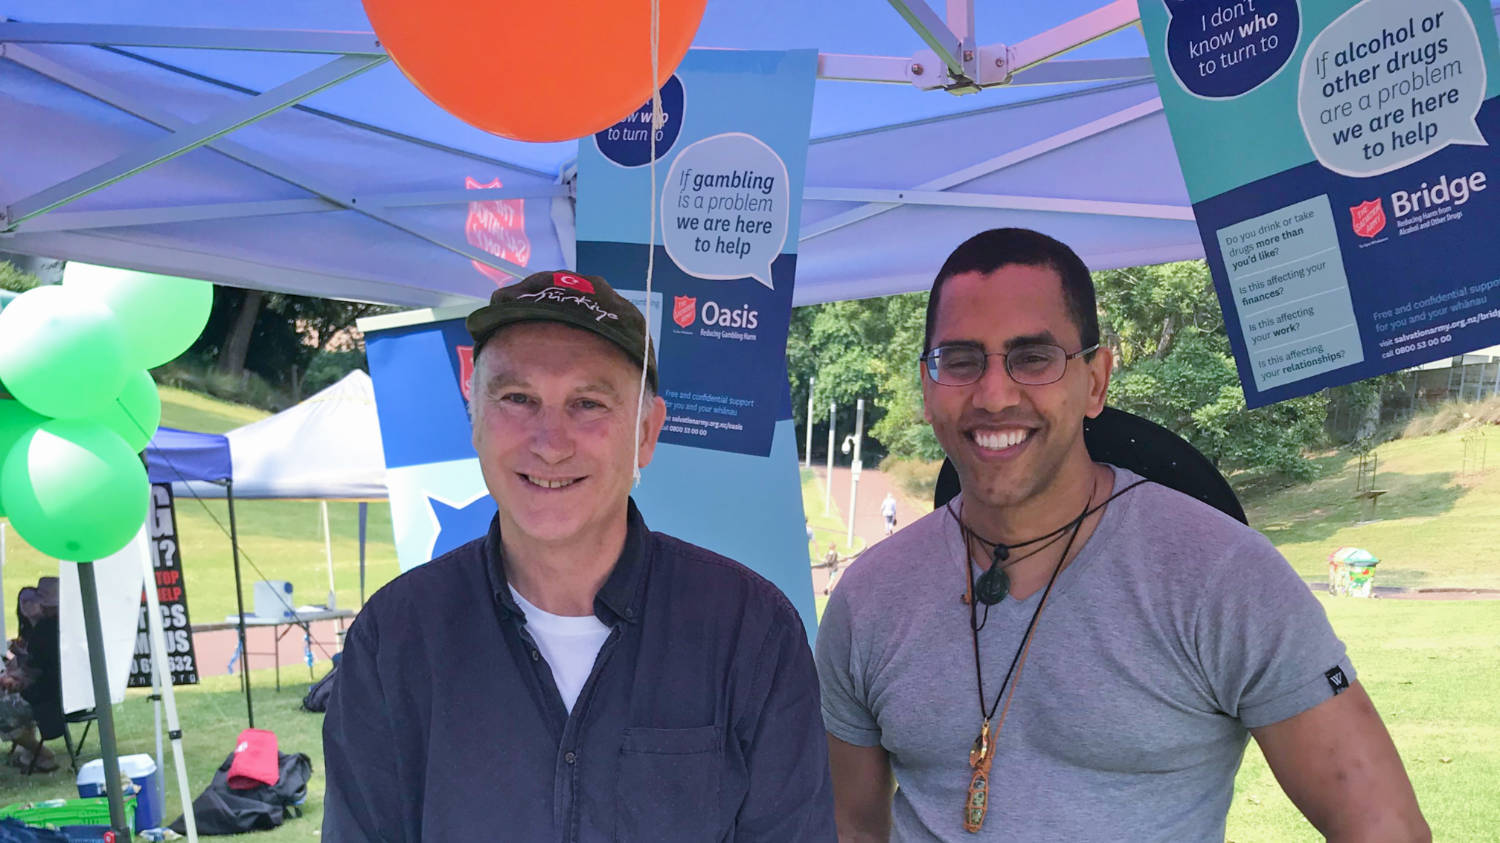 Joseph Whitton from The Salvation Army Oasis and Aaron Thomas from The Salvation Army Bridge look after the stall at the He Hikoi Mātūtū Recovery Walk